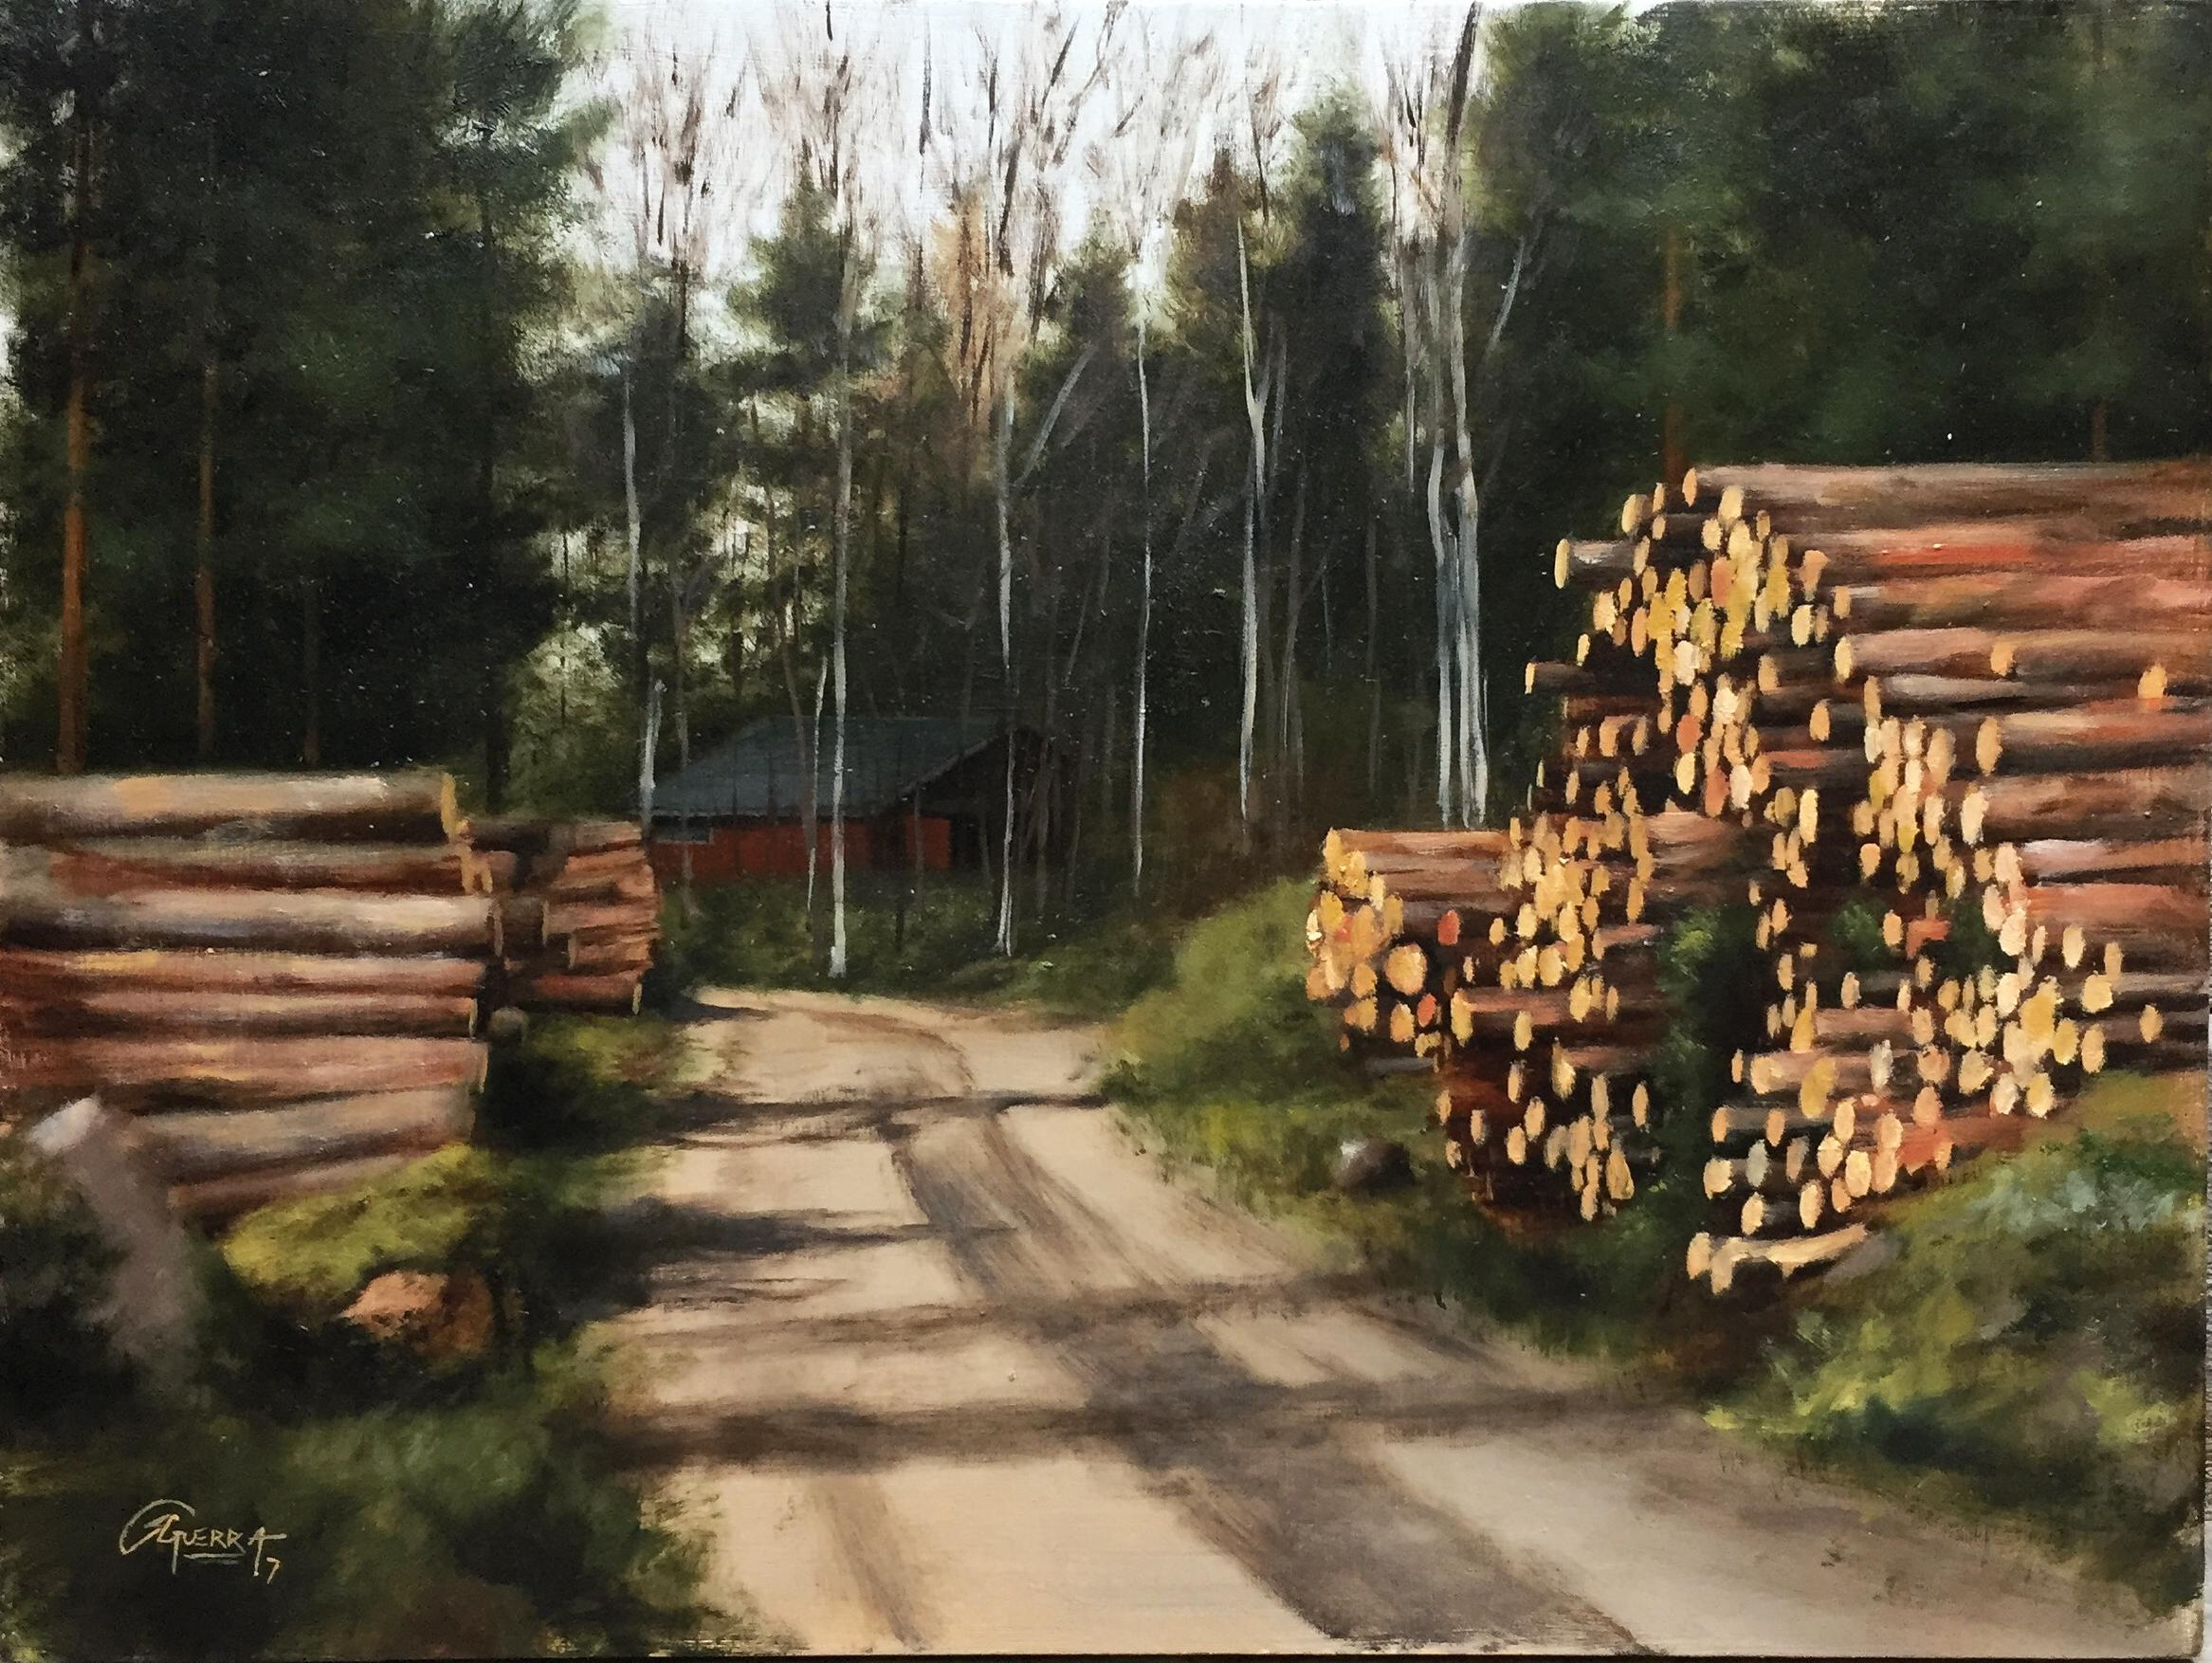 Wood Trunks on an Earth Road, Rafael Guerra Painting